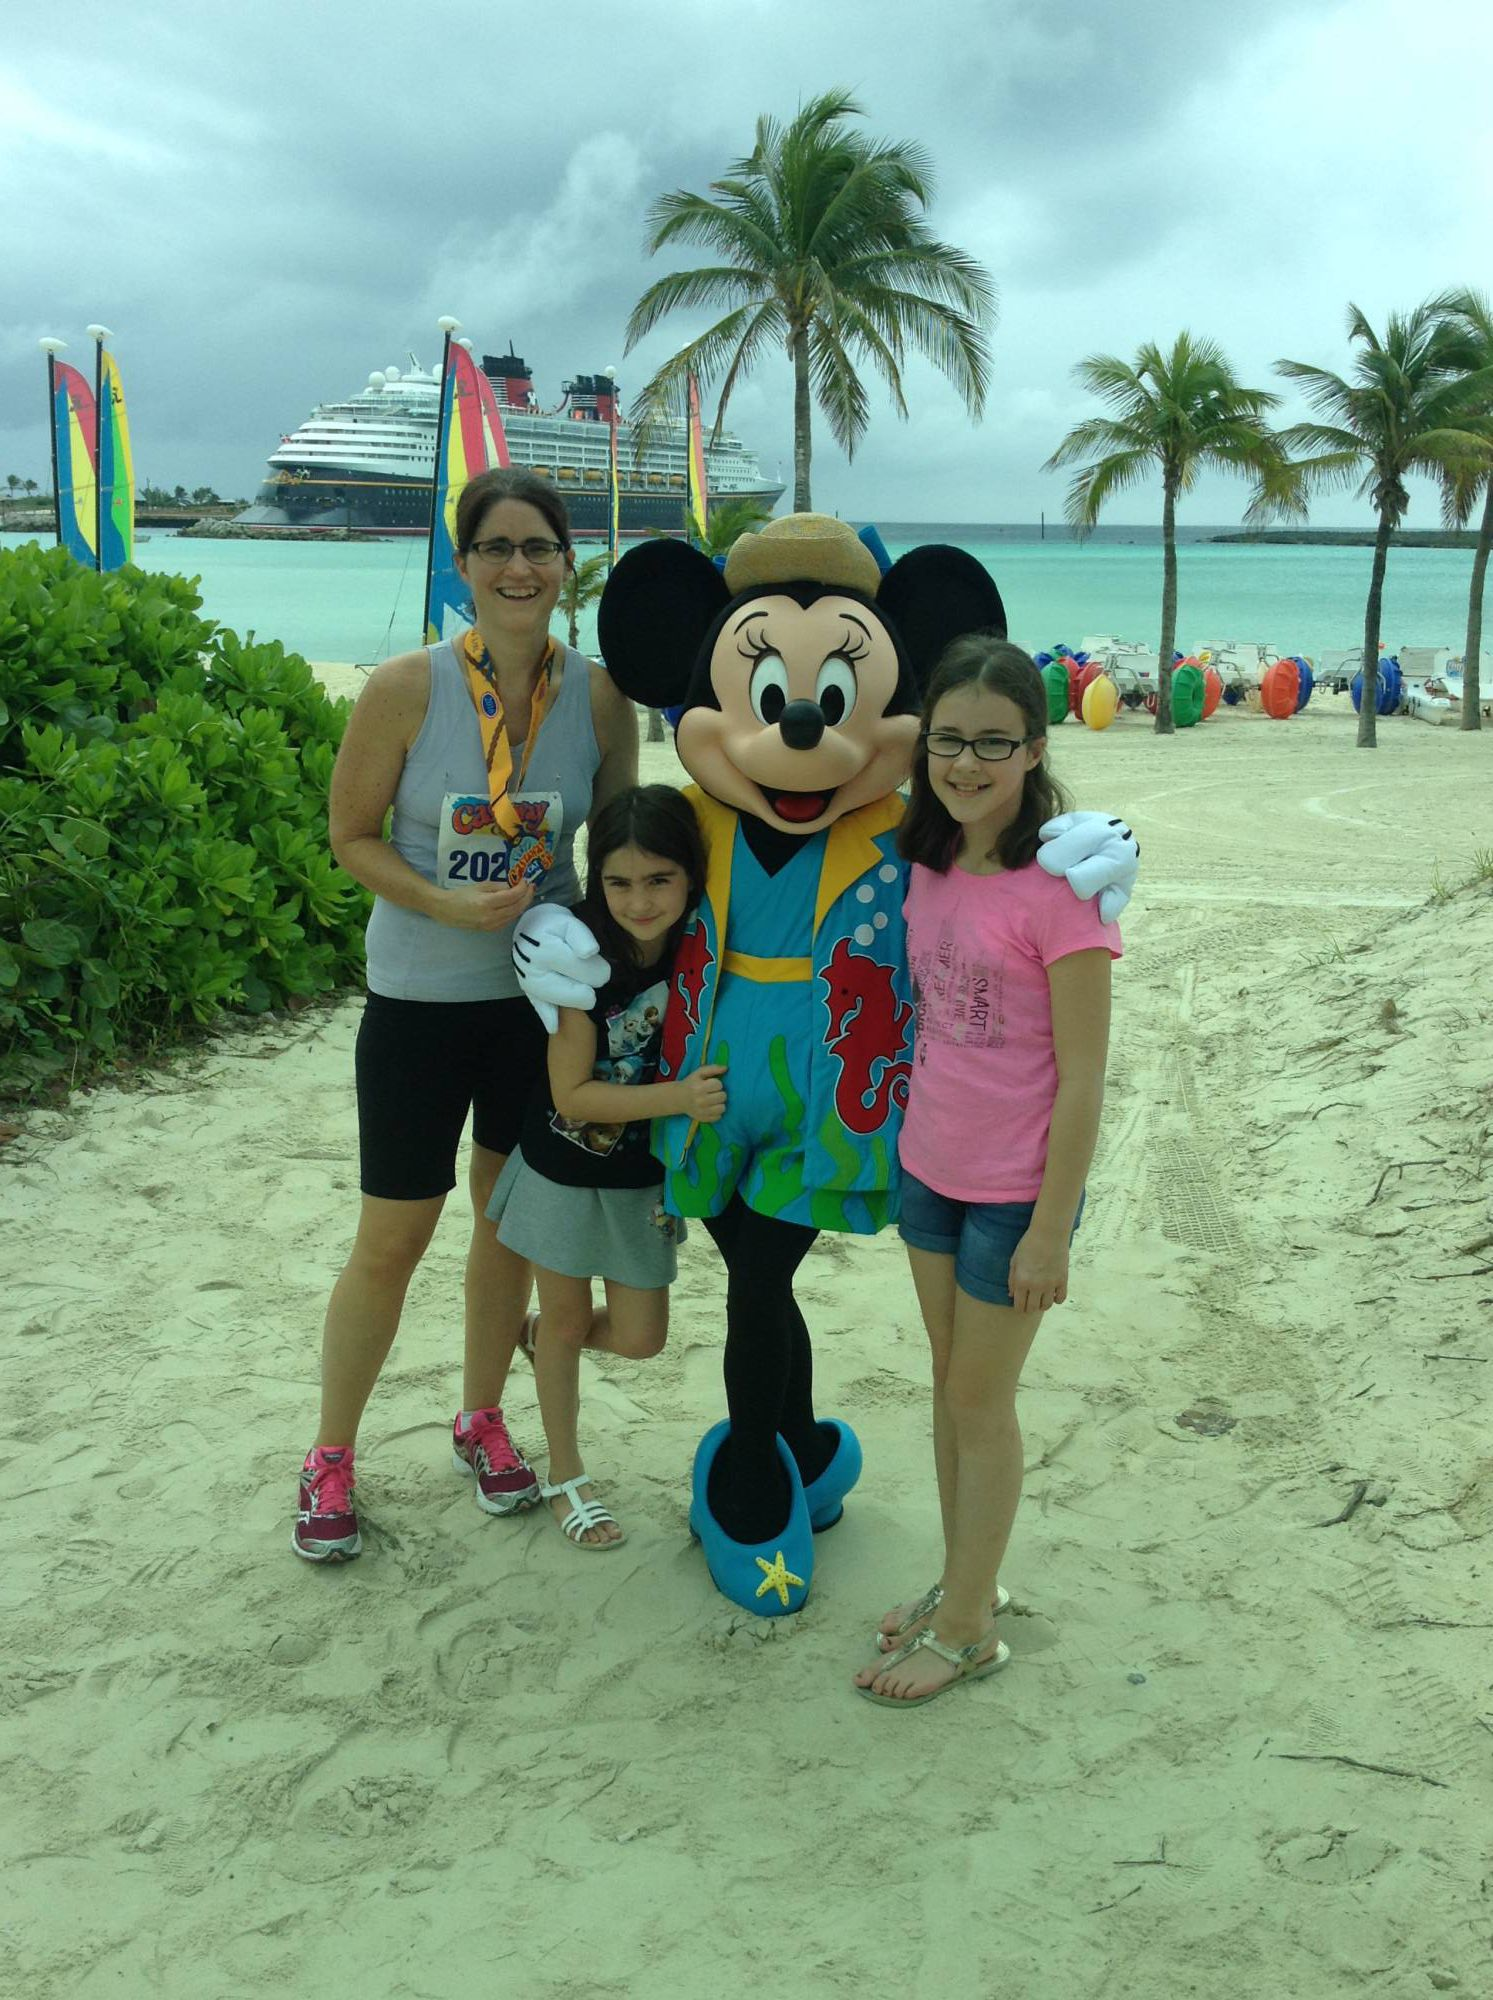 Make the most of a cloudy day on Castaway Cay |PassPorter.com